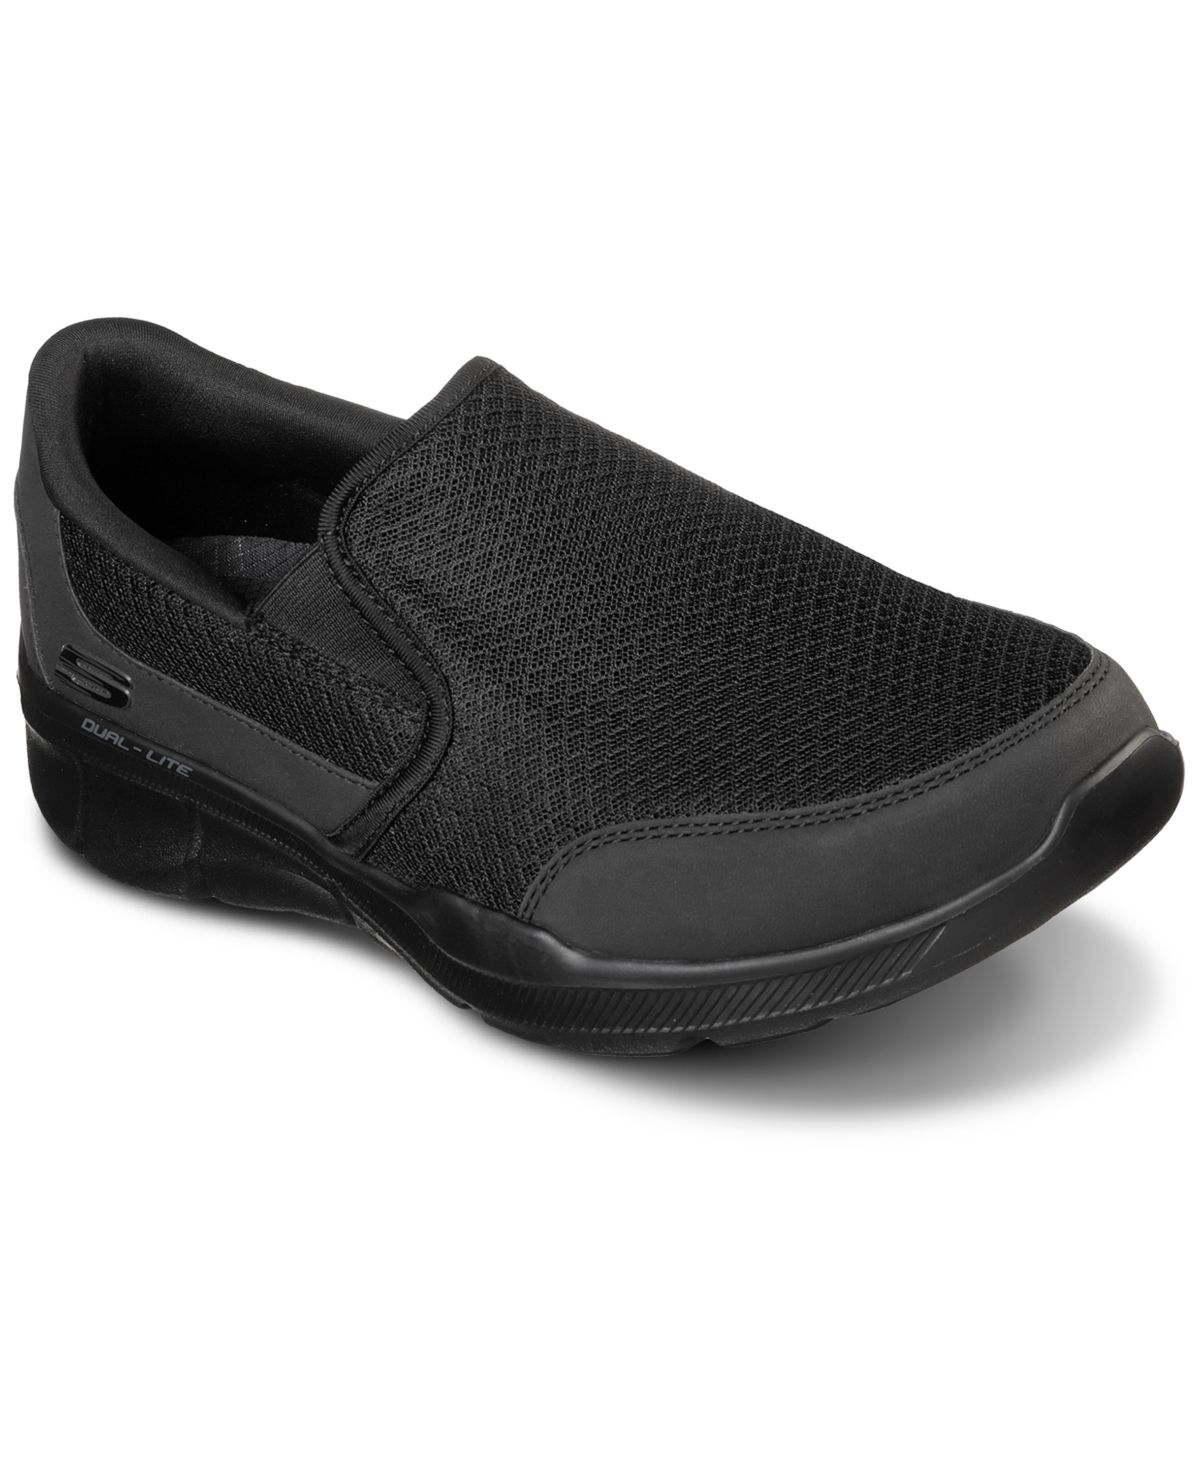 Mens Skechers Extra Wide Athletic Shoes & Sneakers | Kohl's